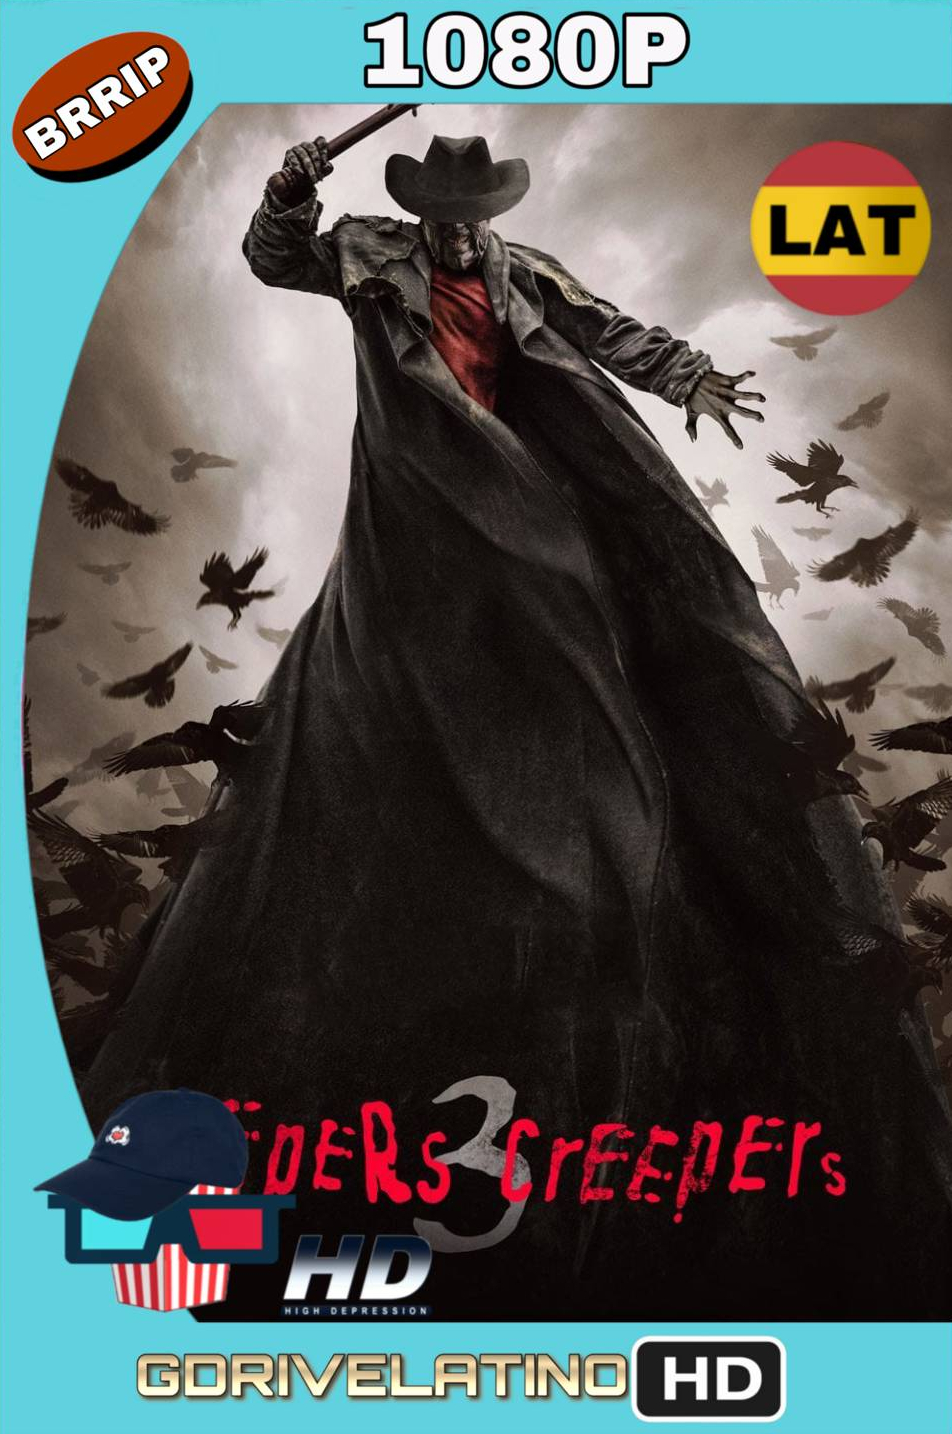 Jeepers Creepers 3 (2017) BRRip 1080p (Latino) MKV